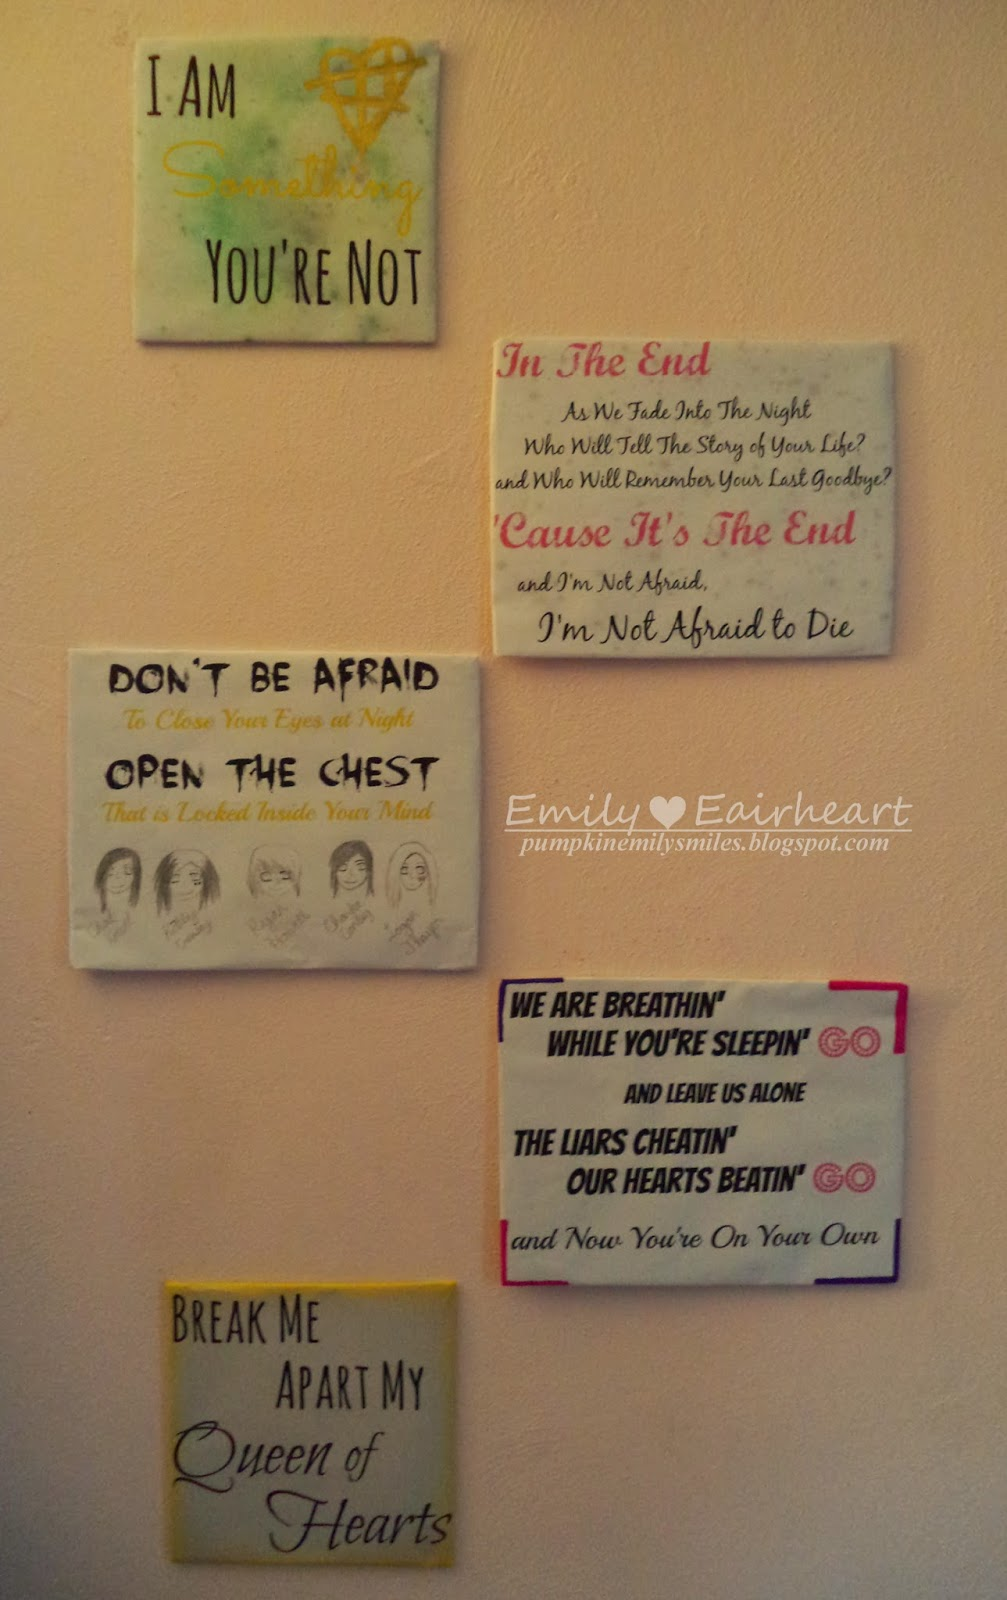 The layout of the lyric art on the wall.